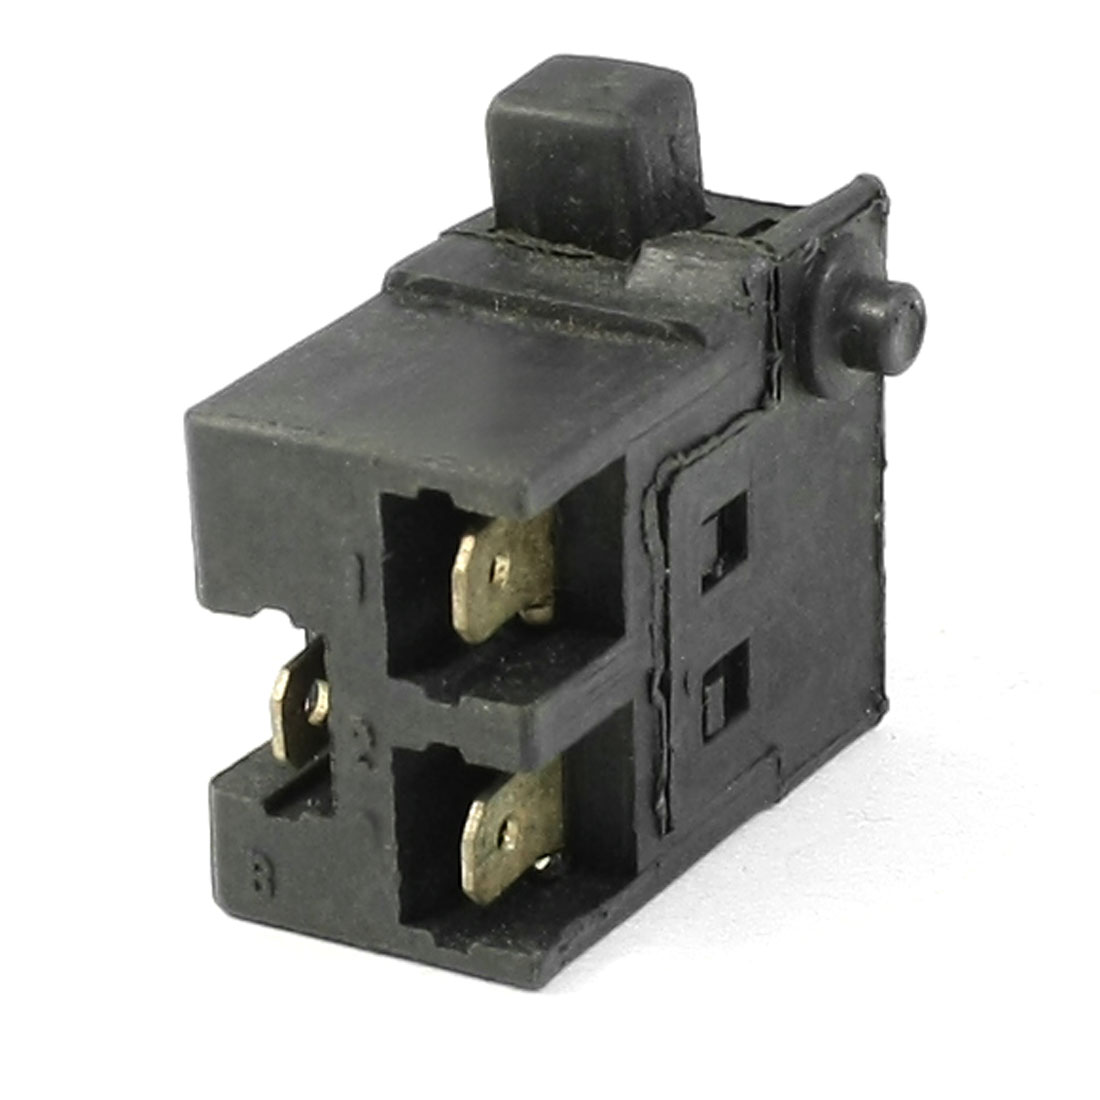 AC 250V/8A 125V/15A SPDT 3 Pins Momentary Electric Tool Trigger Switch